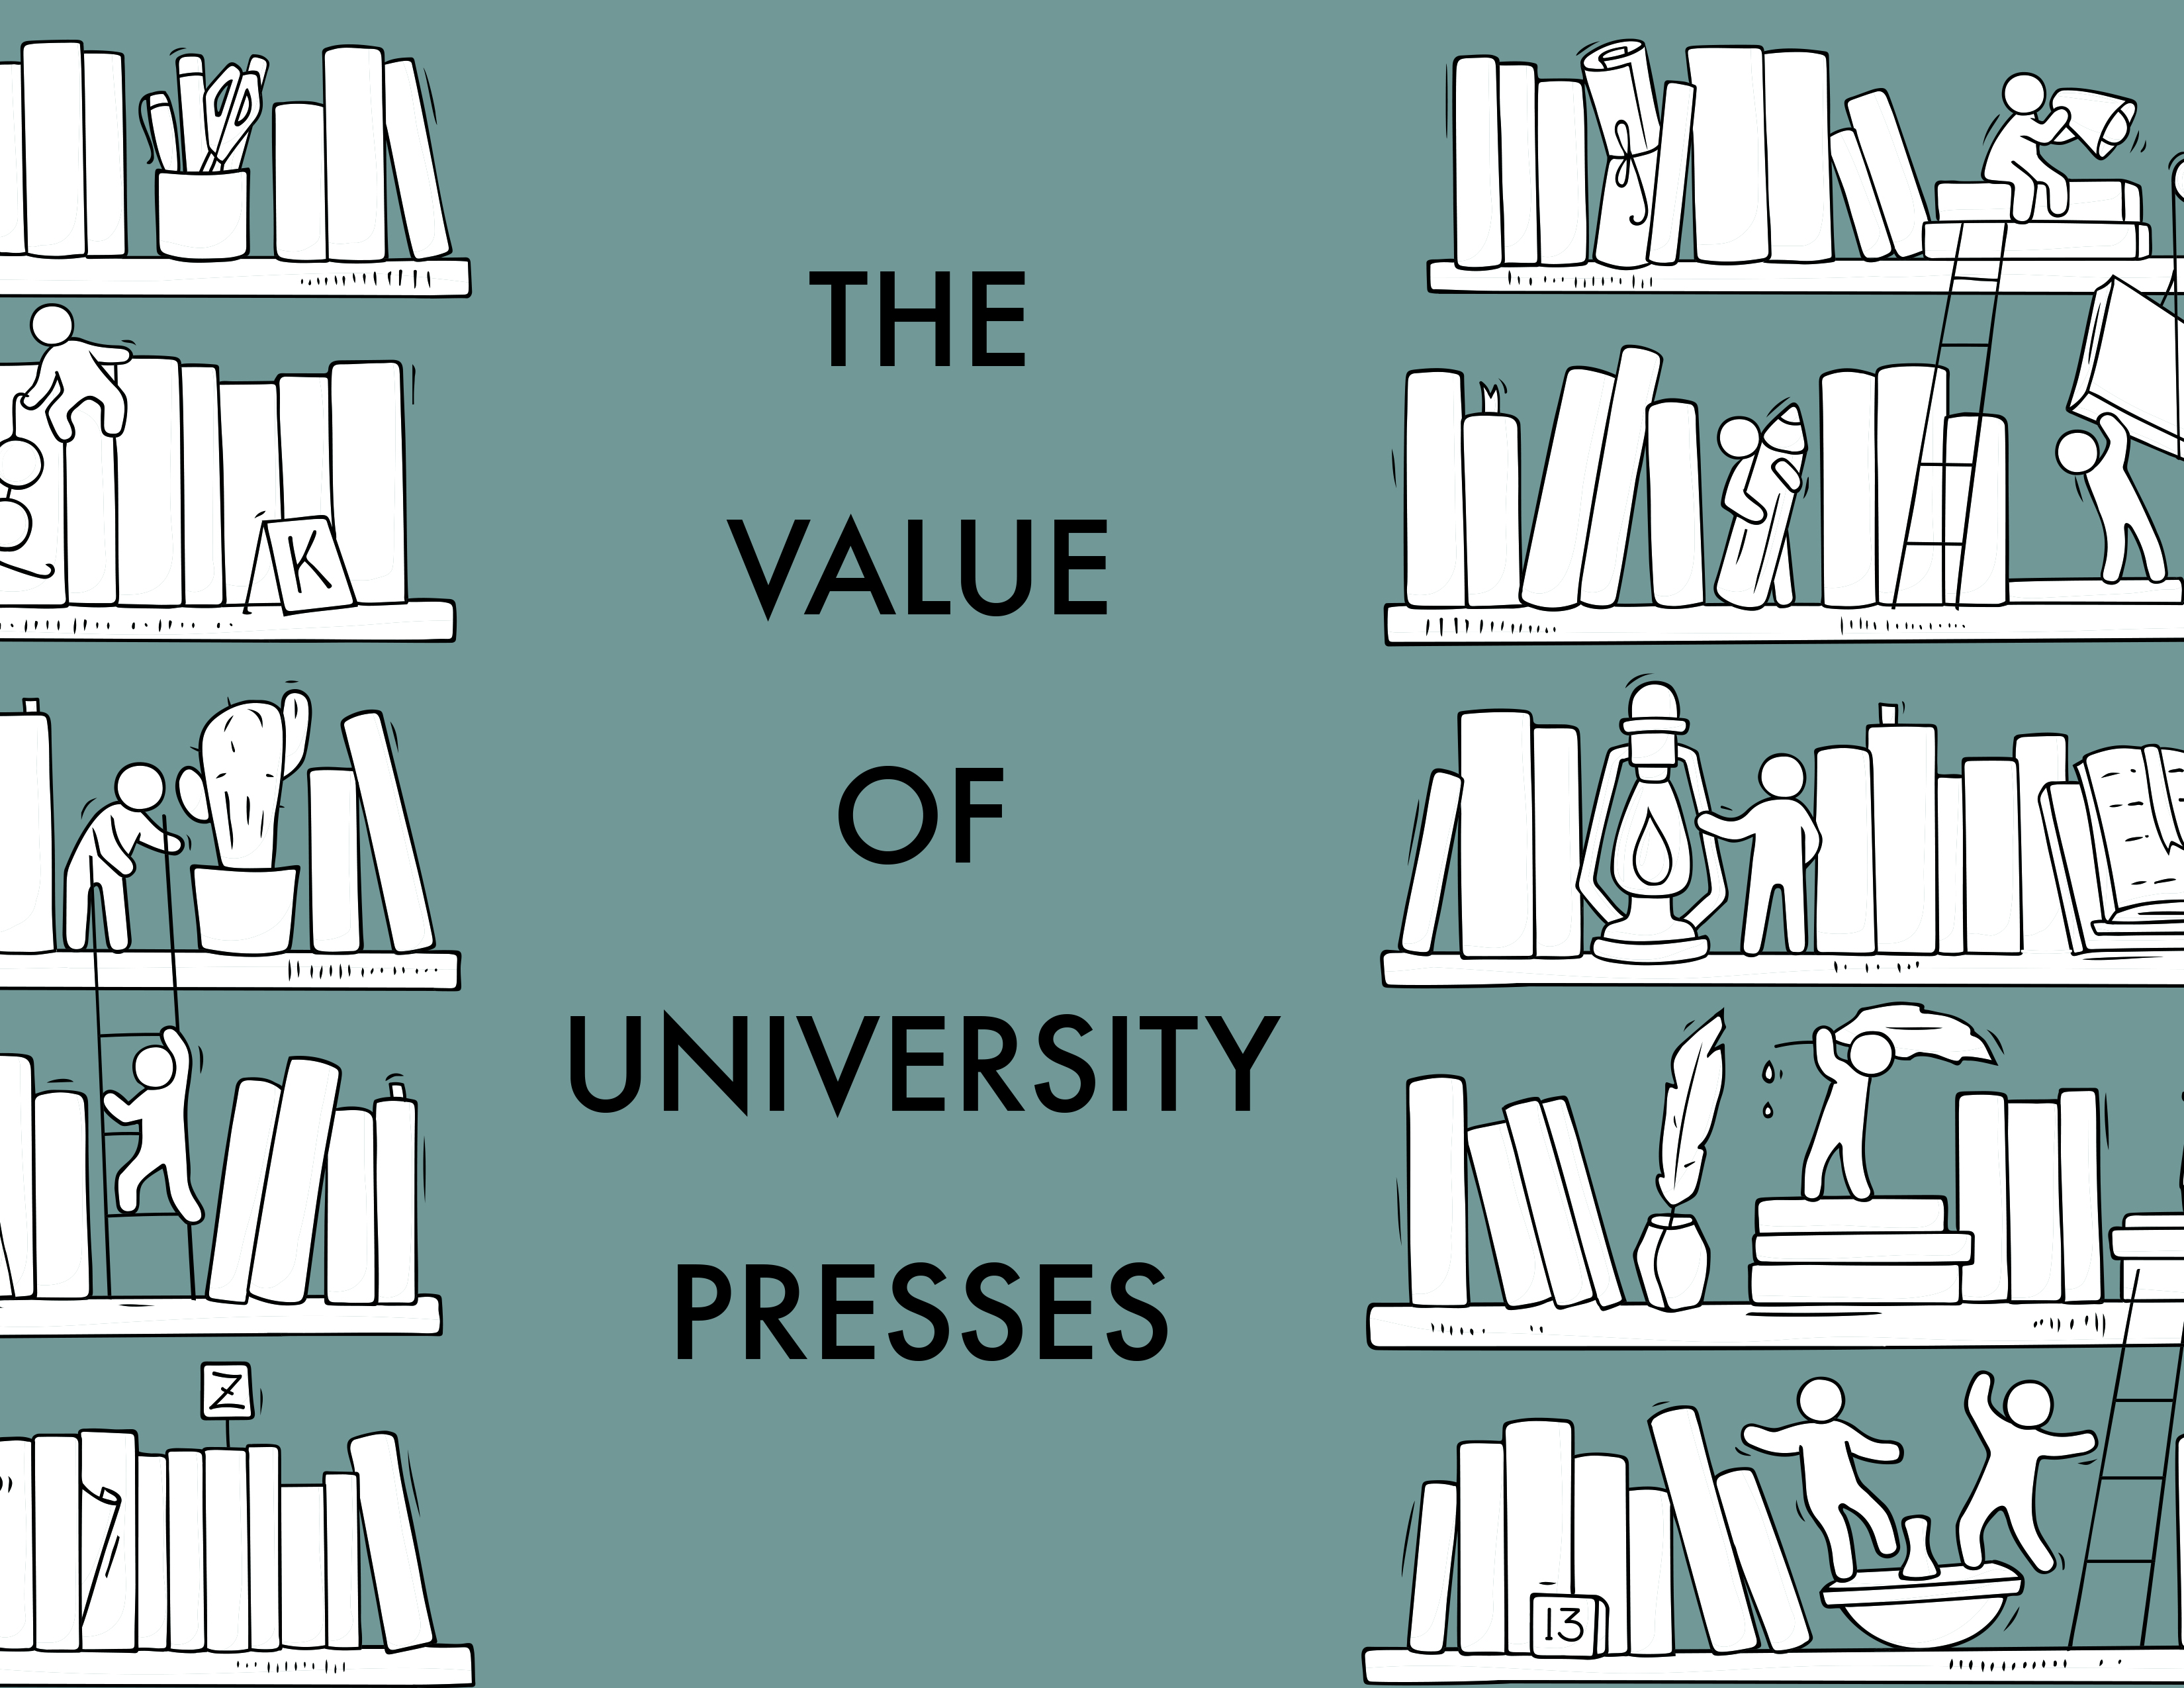 The Value of University Presses, Then and Now